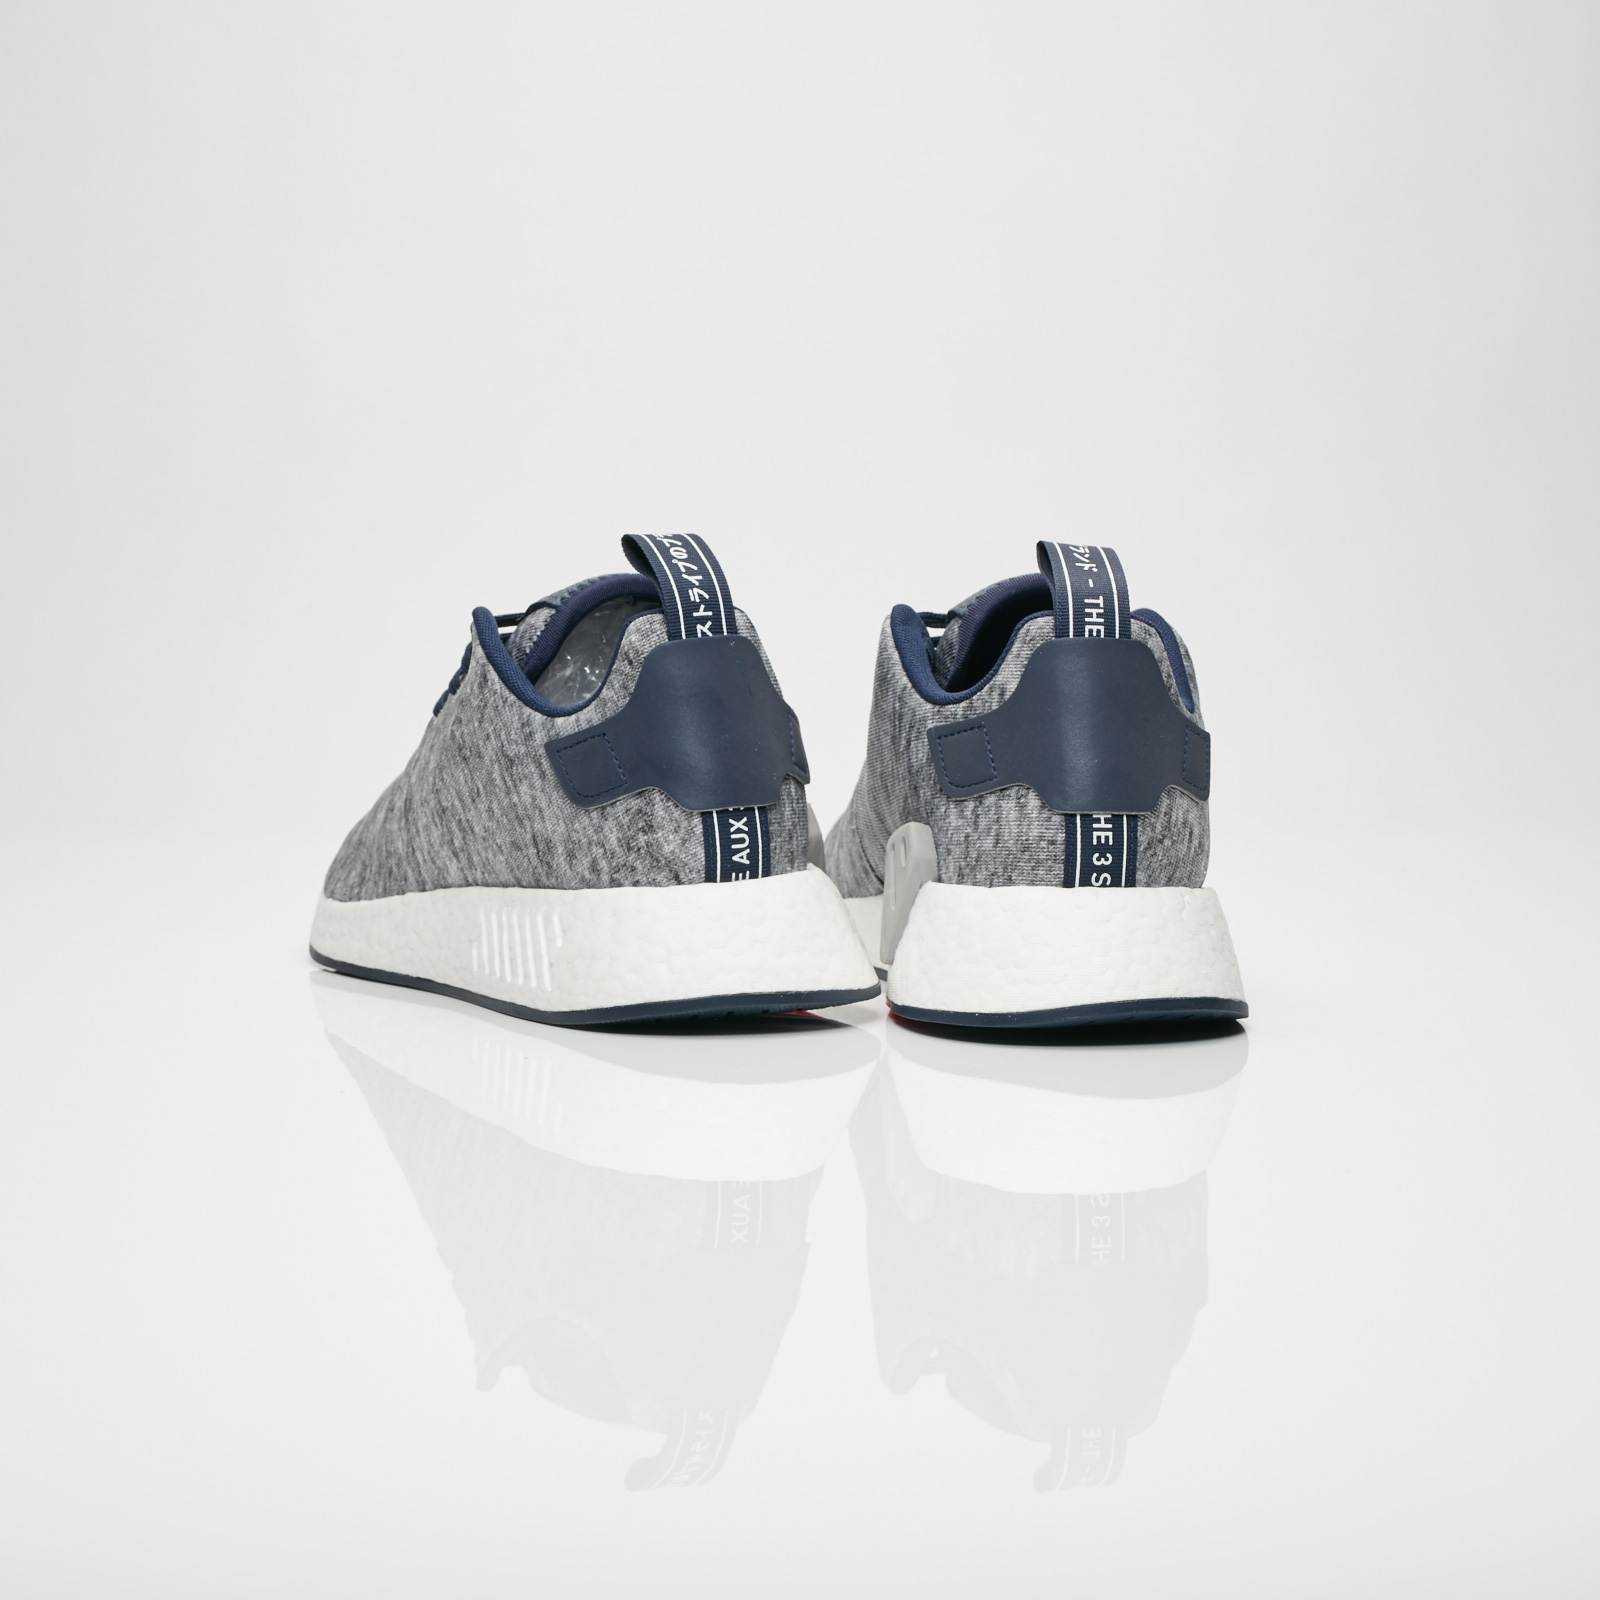 a3baa90d6 adidas NMD R2 x United Arrows   Sons - Da8834 - Sneakersnstuff ...